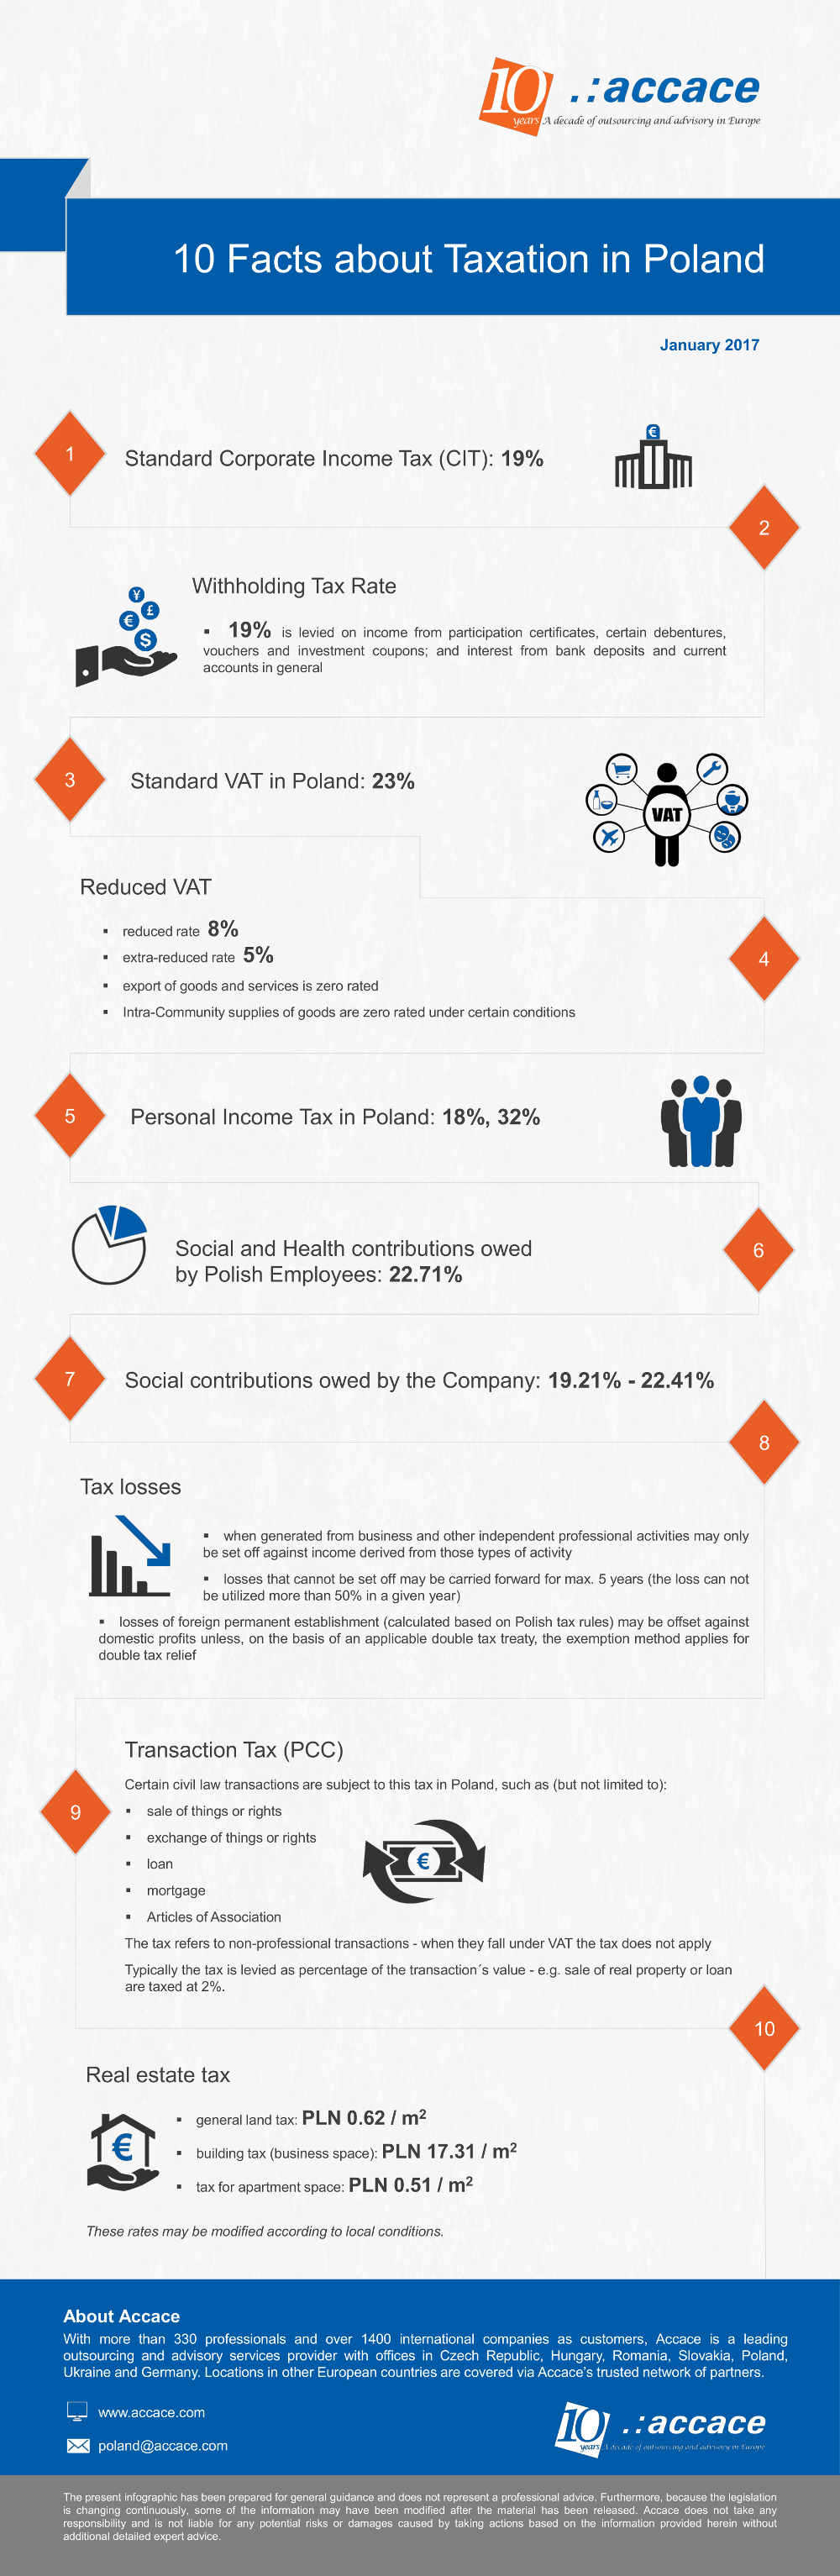 10 facts about taxation in Poland | Infographic